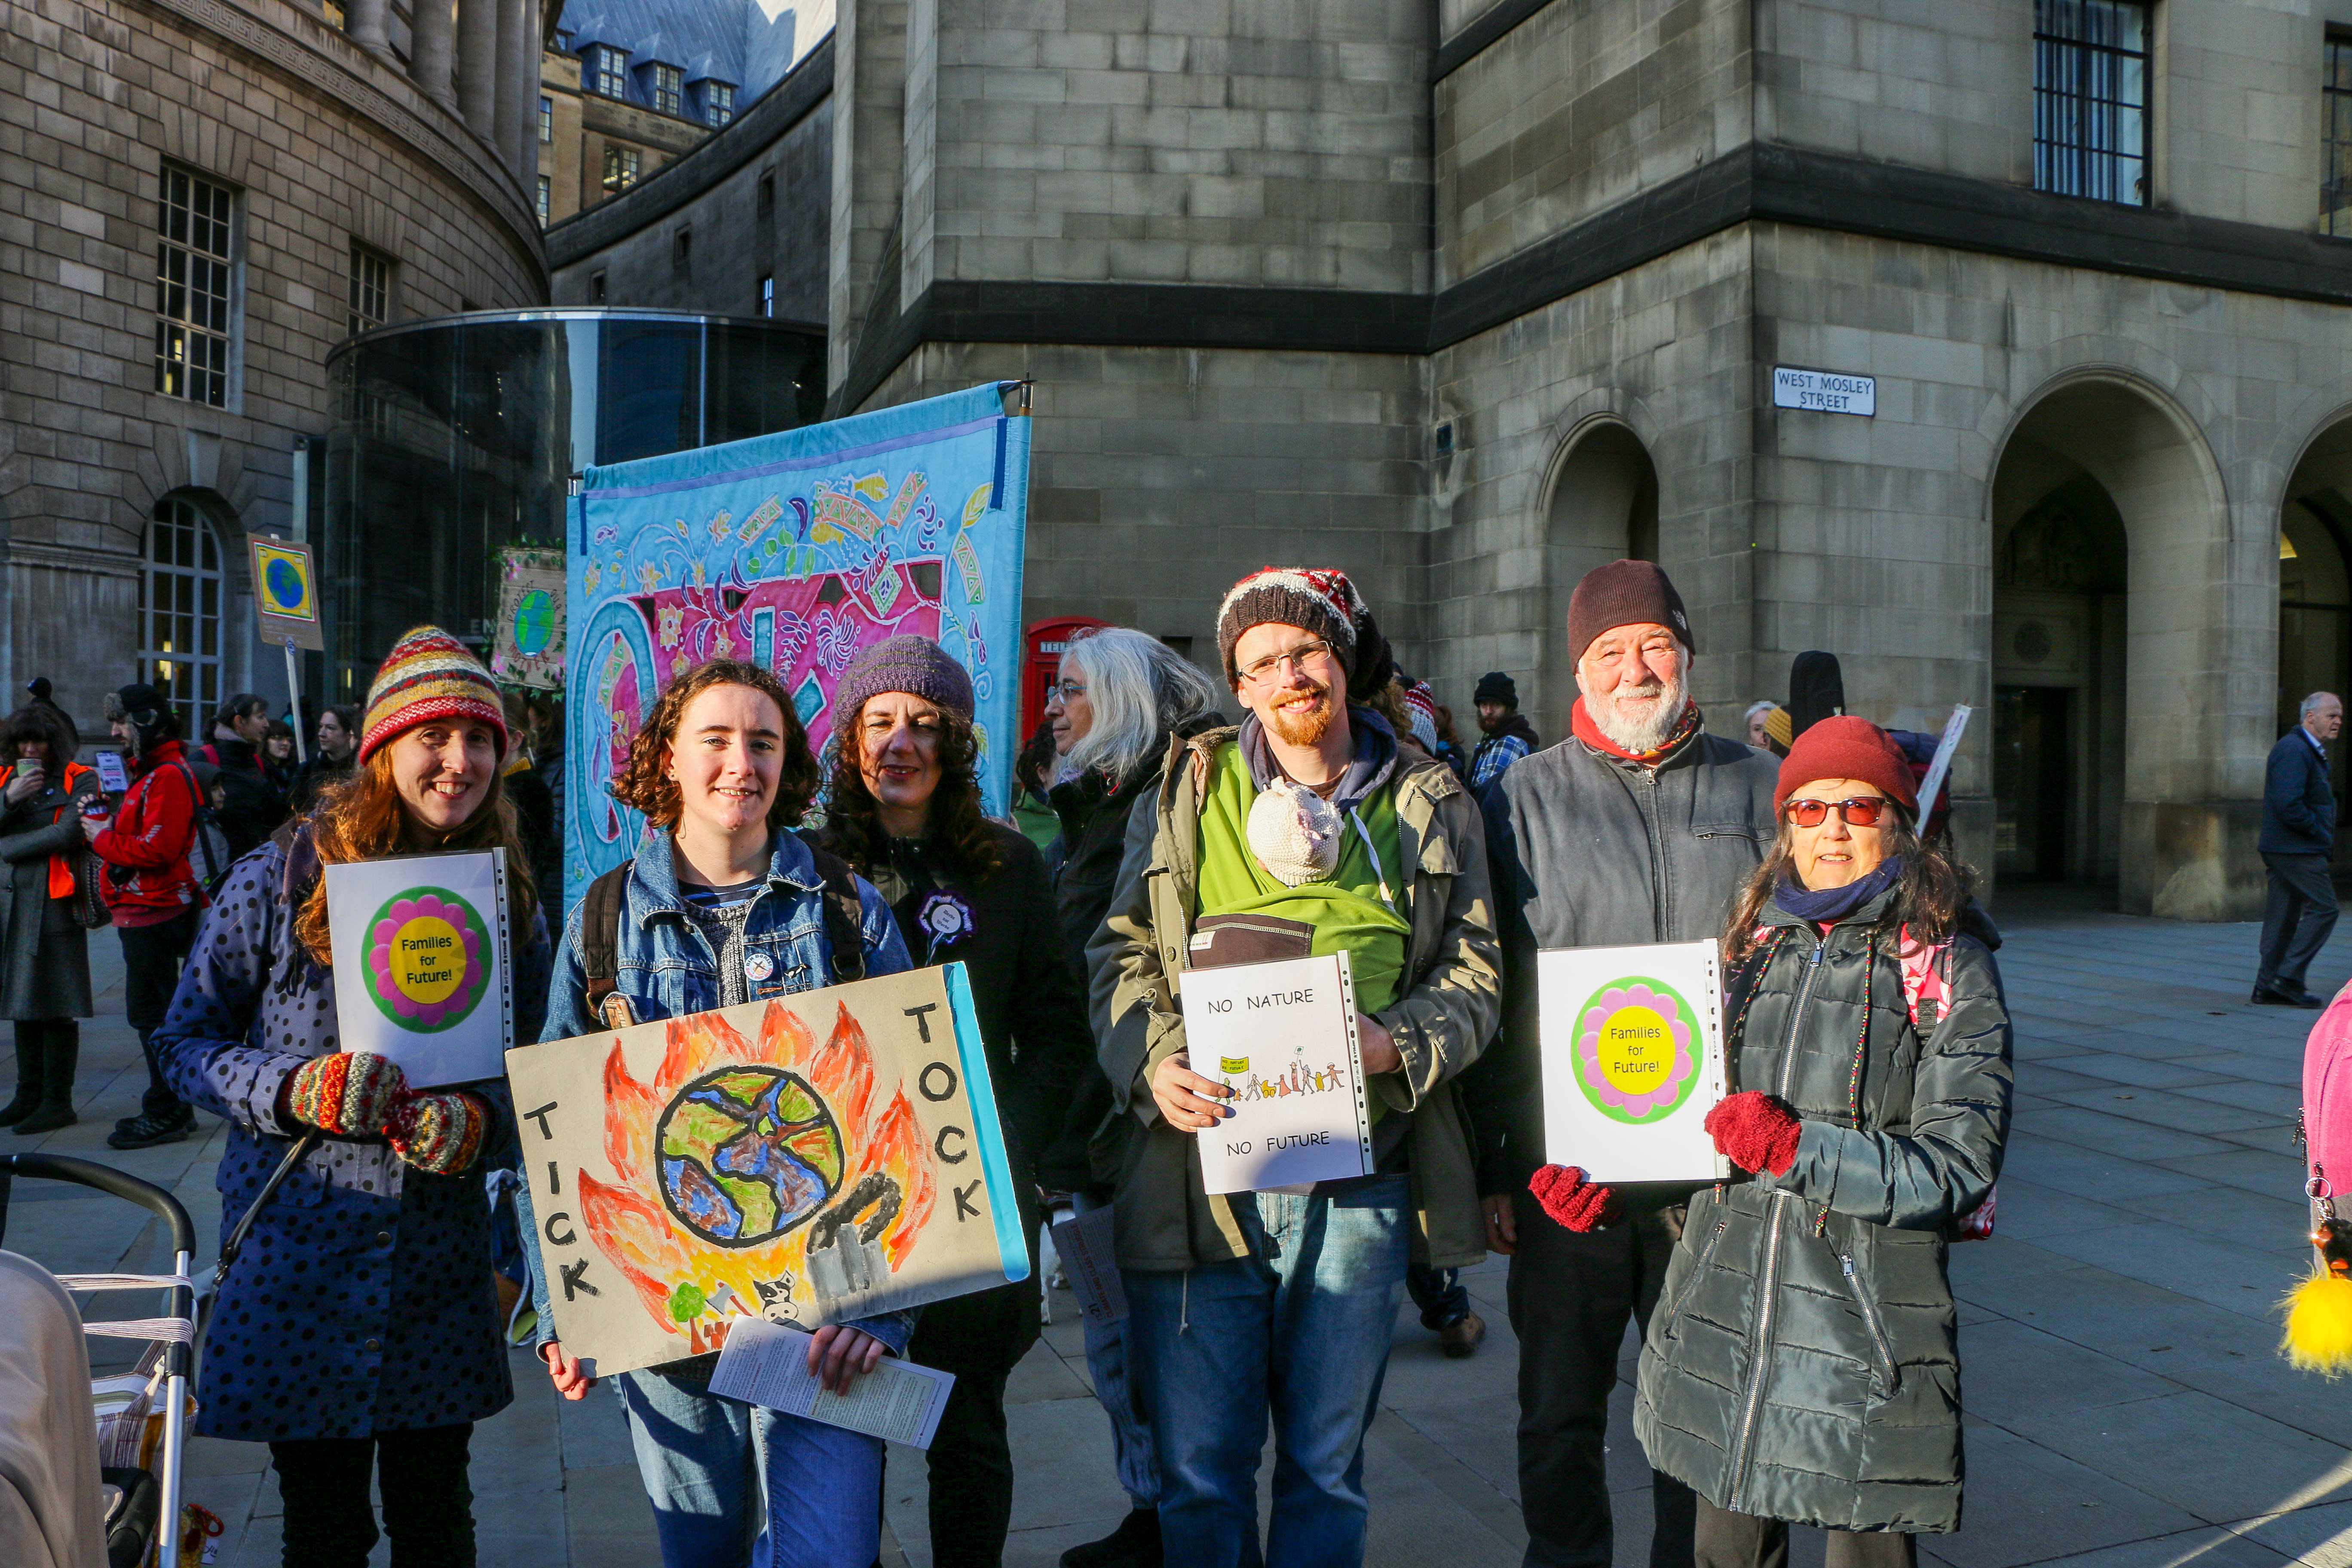 climate protesters, manchester, climate strike, climate change, strike, protest